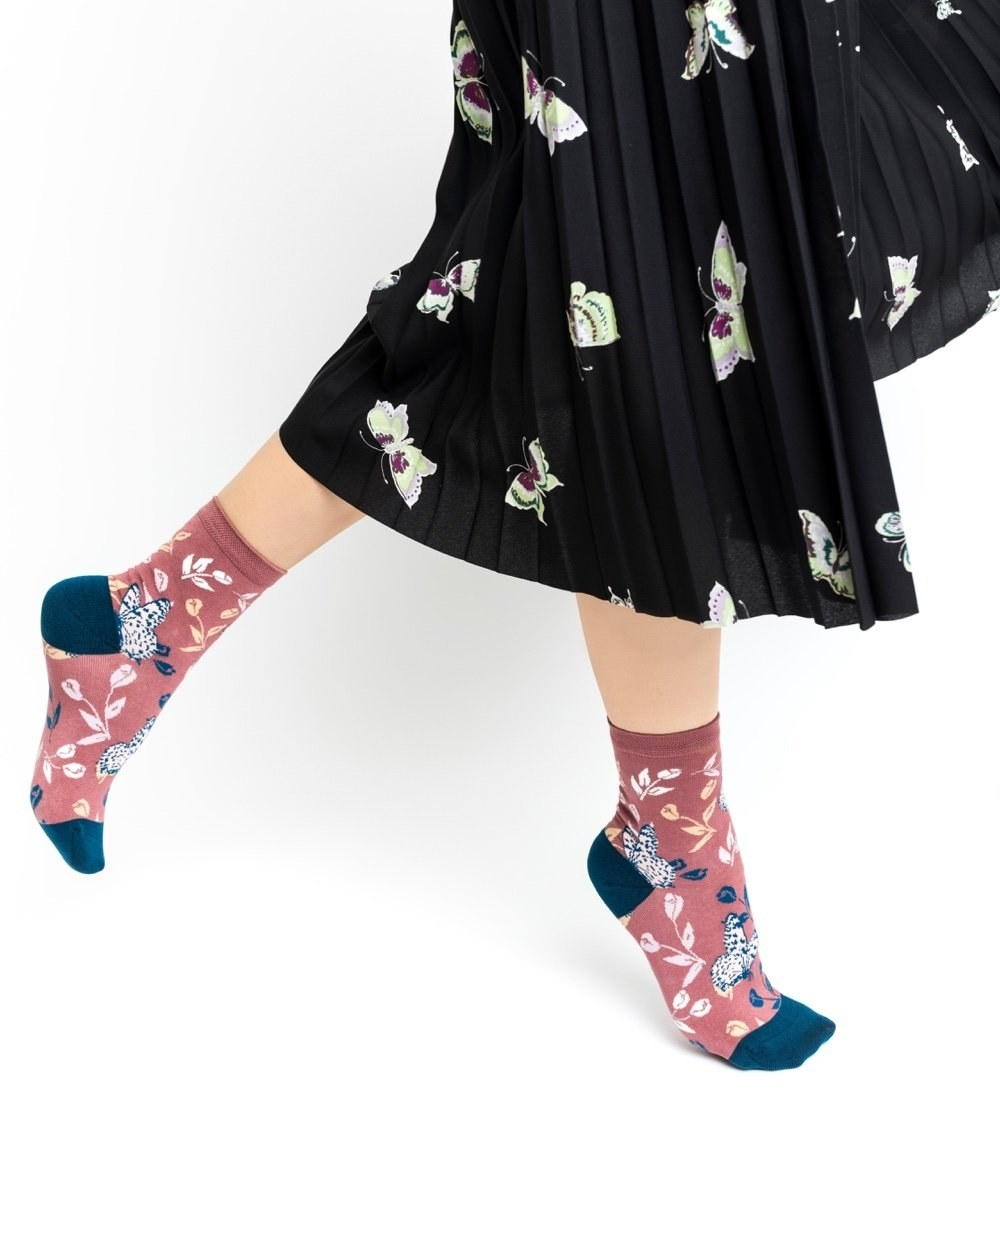 A model wearing the tossed butterfly ankle sock